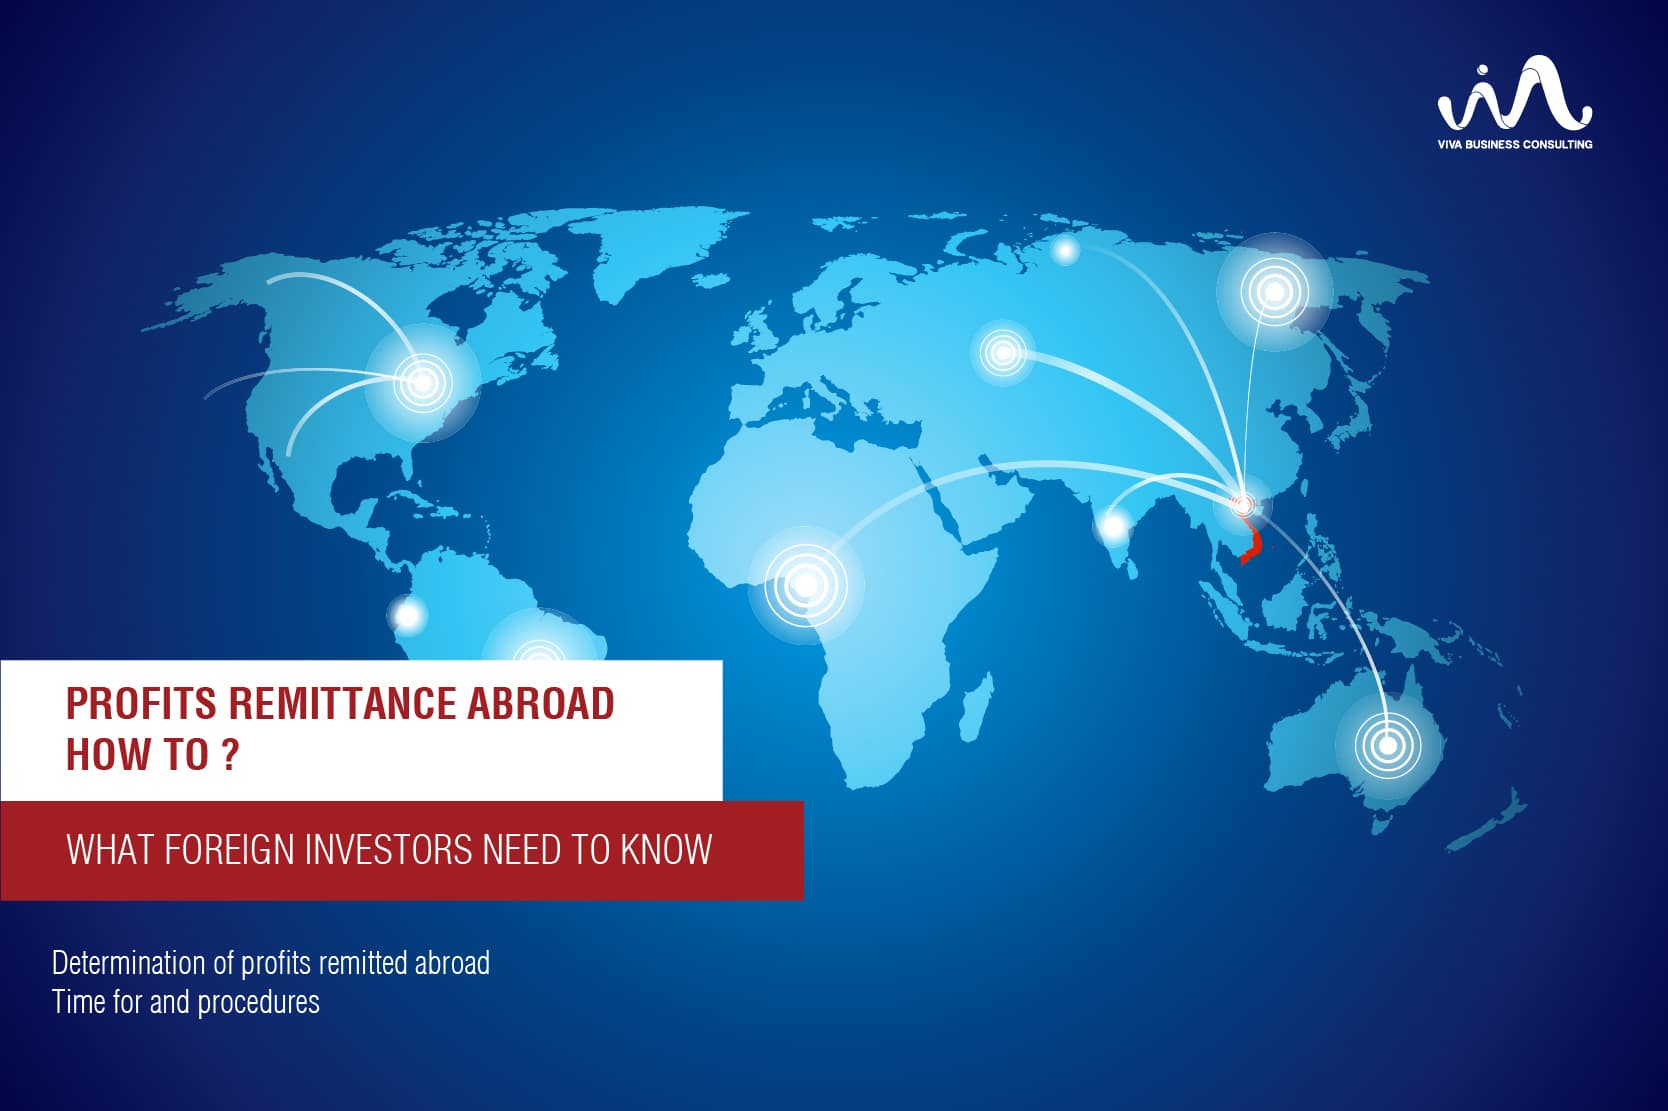 Profits remitted abroad